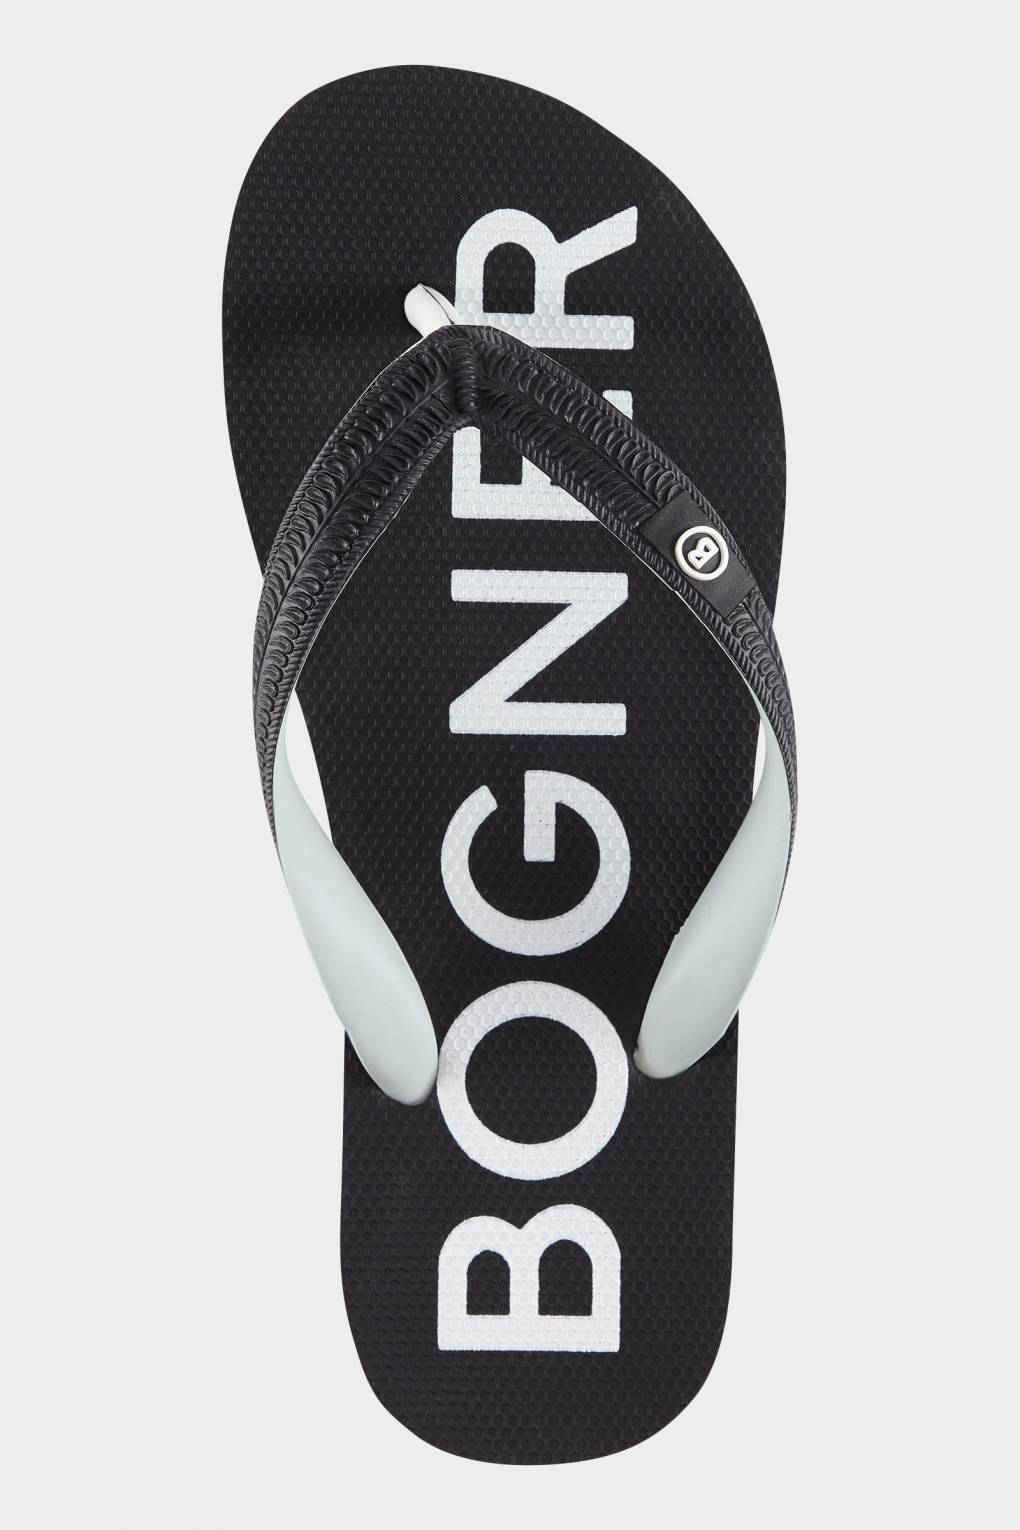 shop bogner shoes